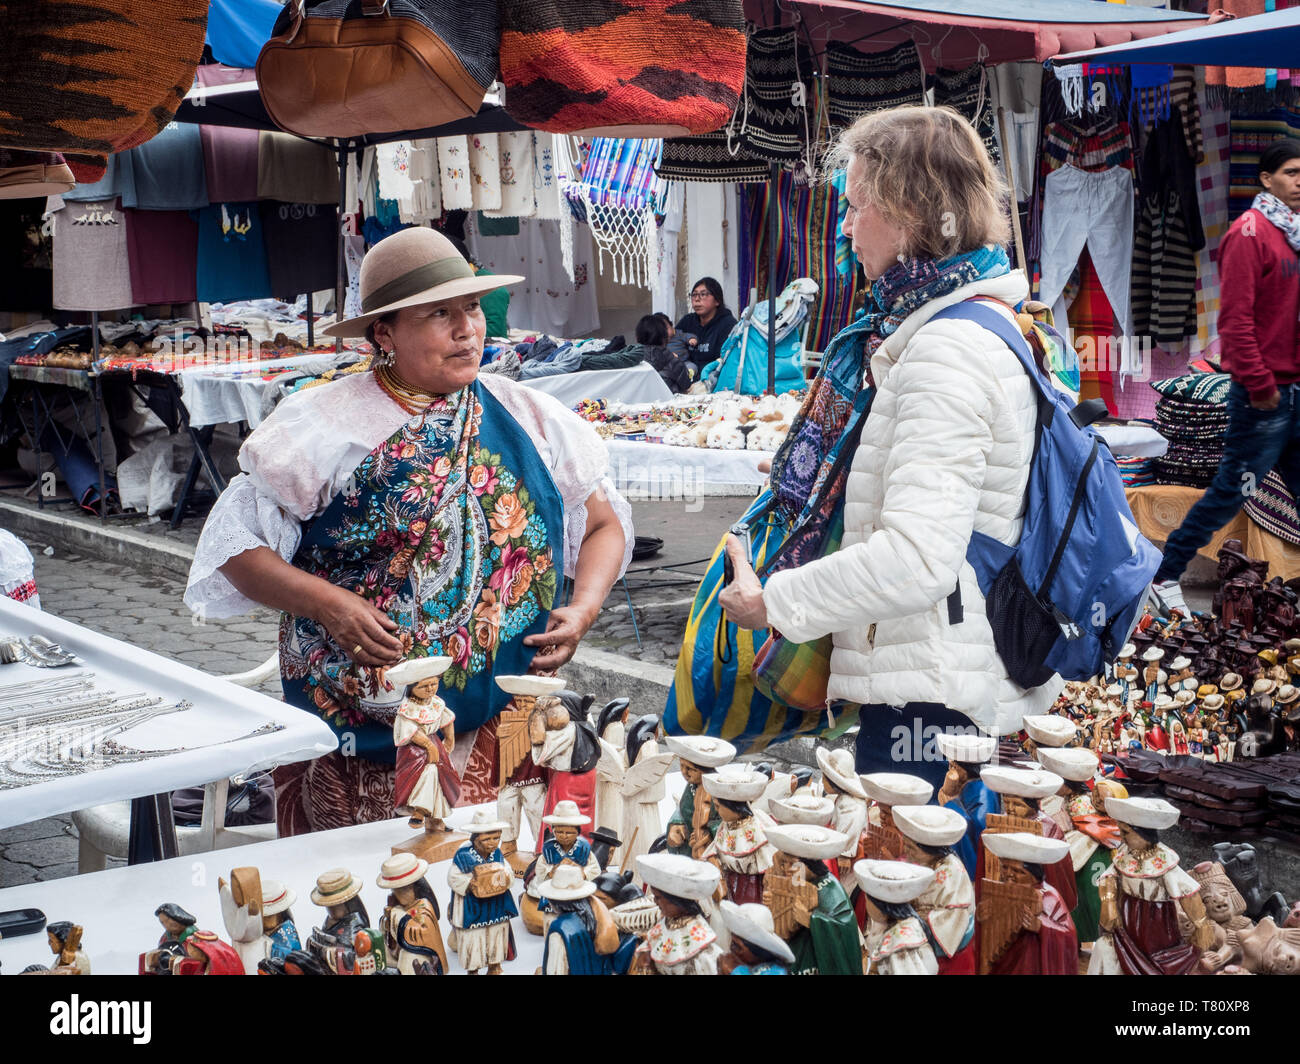 Tourist shopping at market, Plaza de los Ponchos, Otavalo, Ecuador, South America - Stock Image